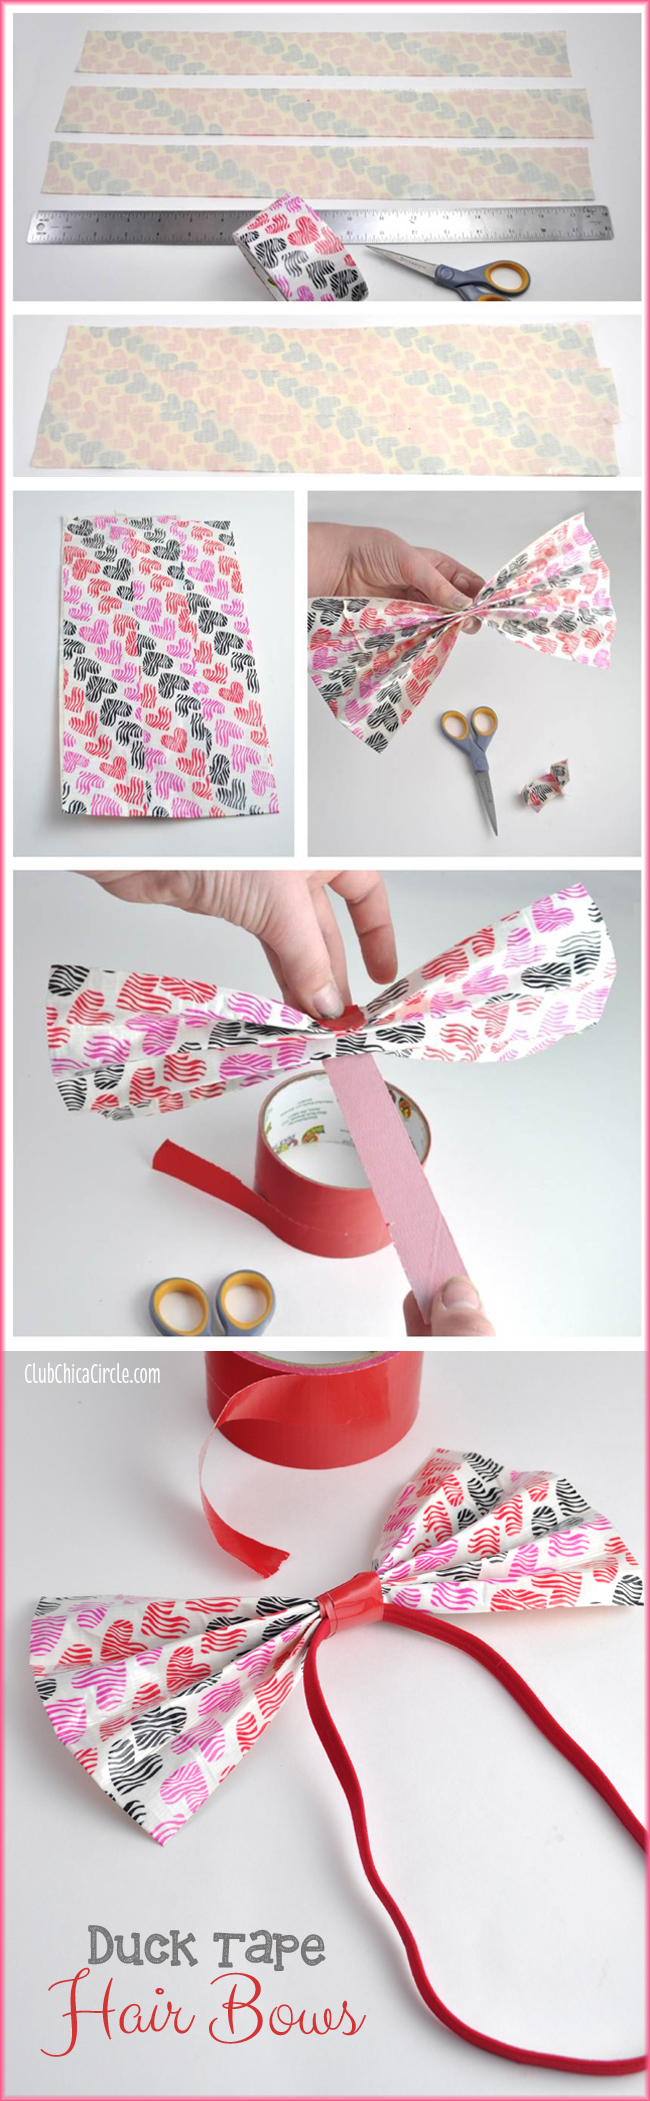 Duck Tape Hair Bows Tutorial